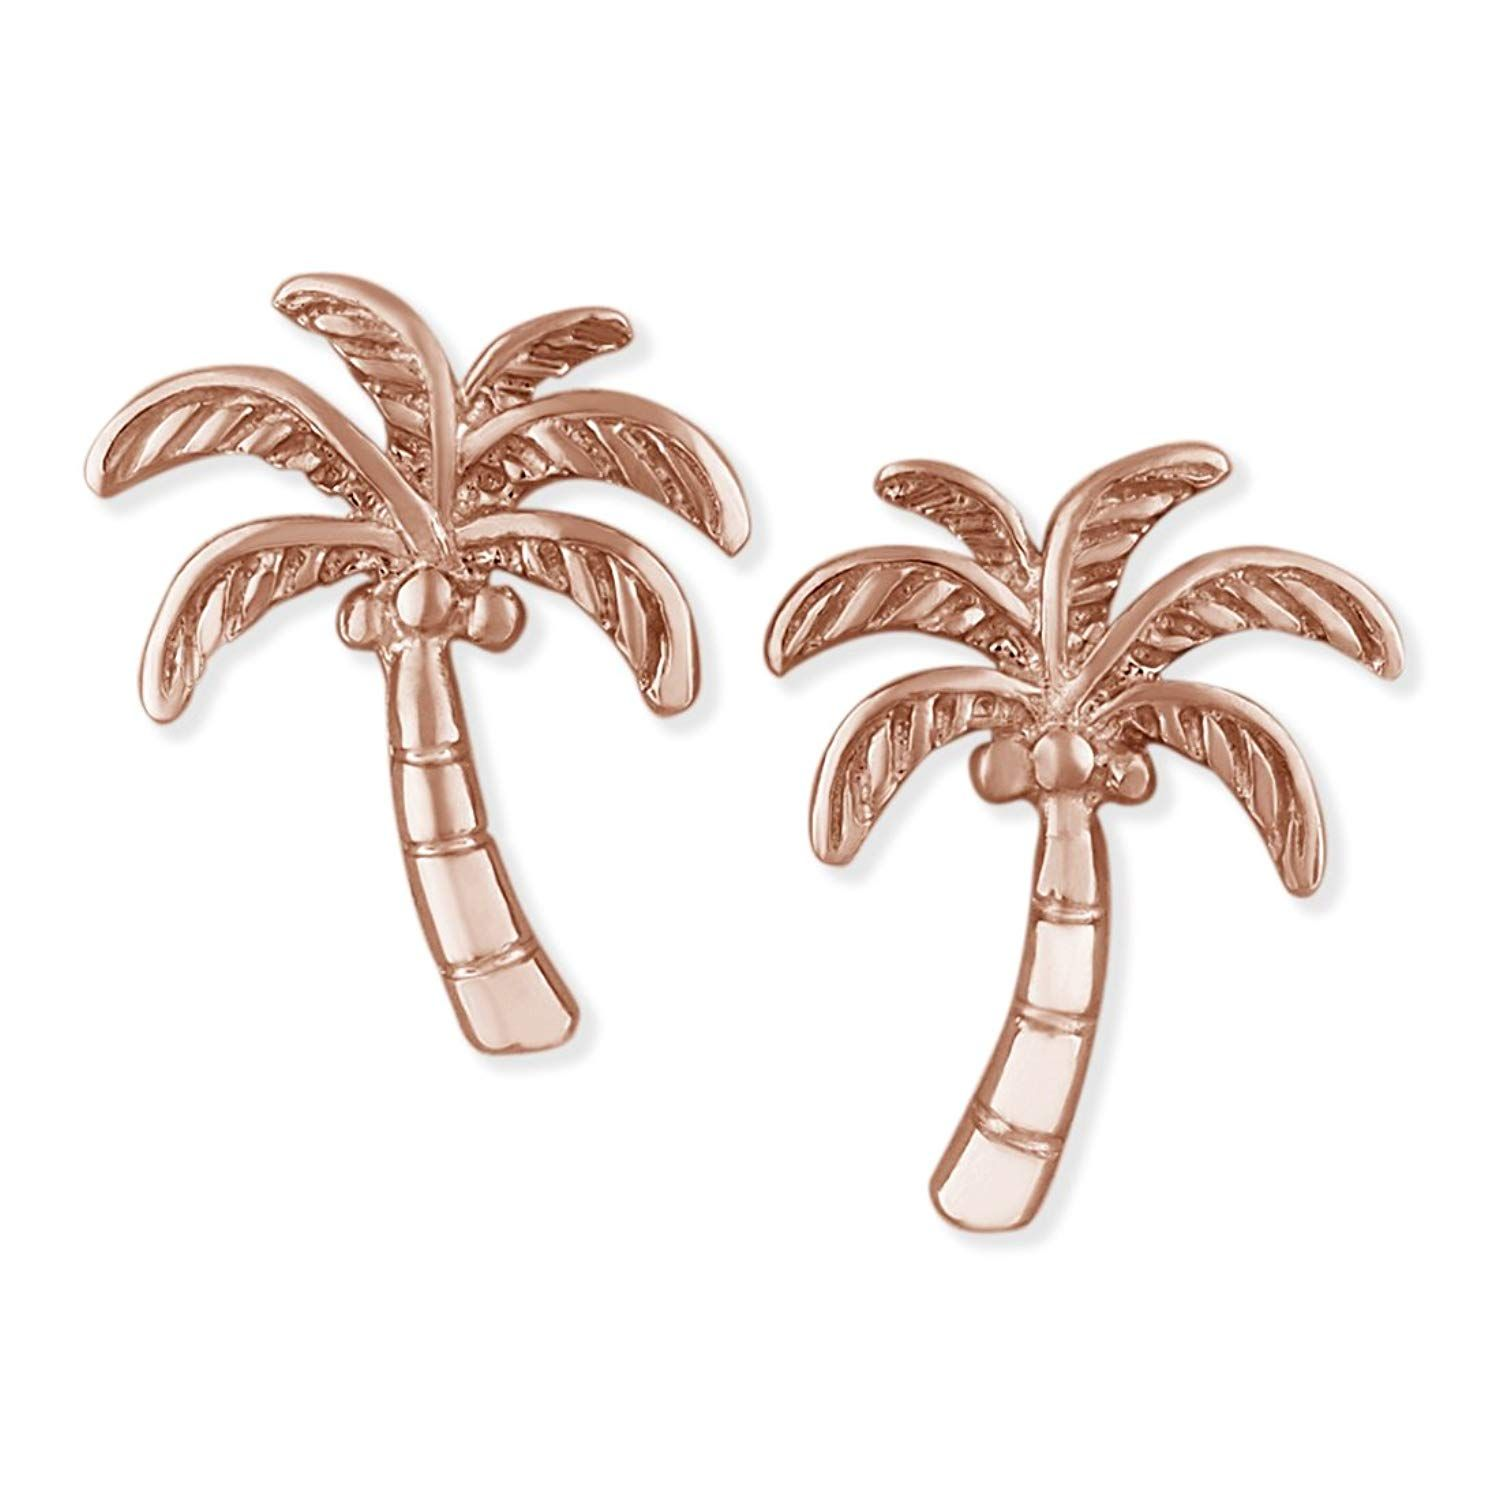 925 Sterling Silver Polished Palm Tree Post Earrings